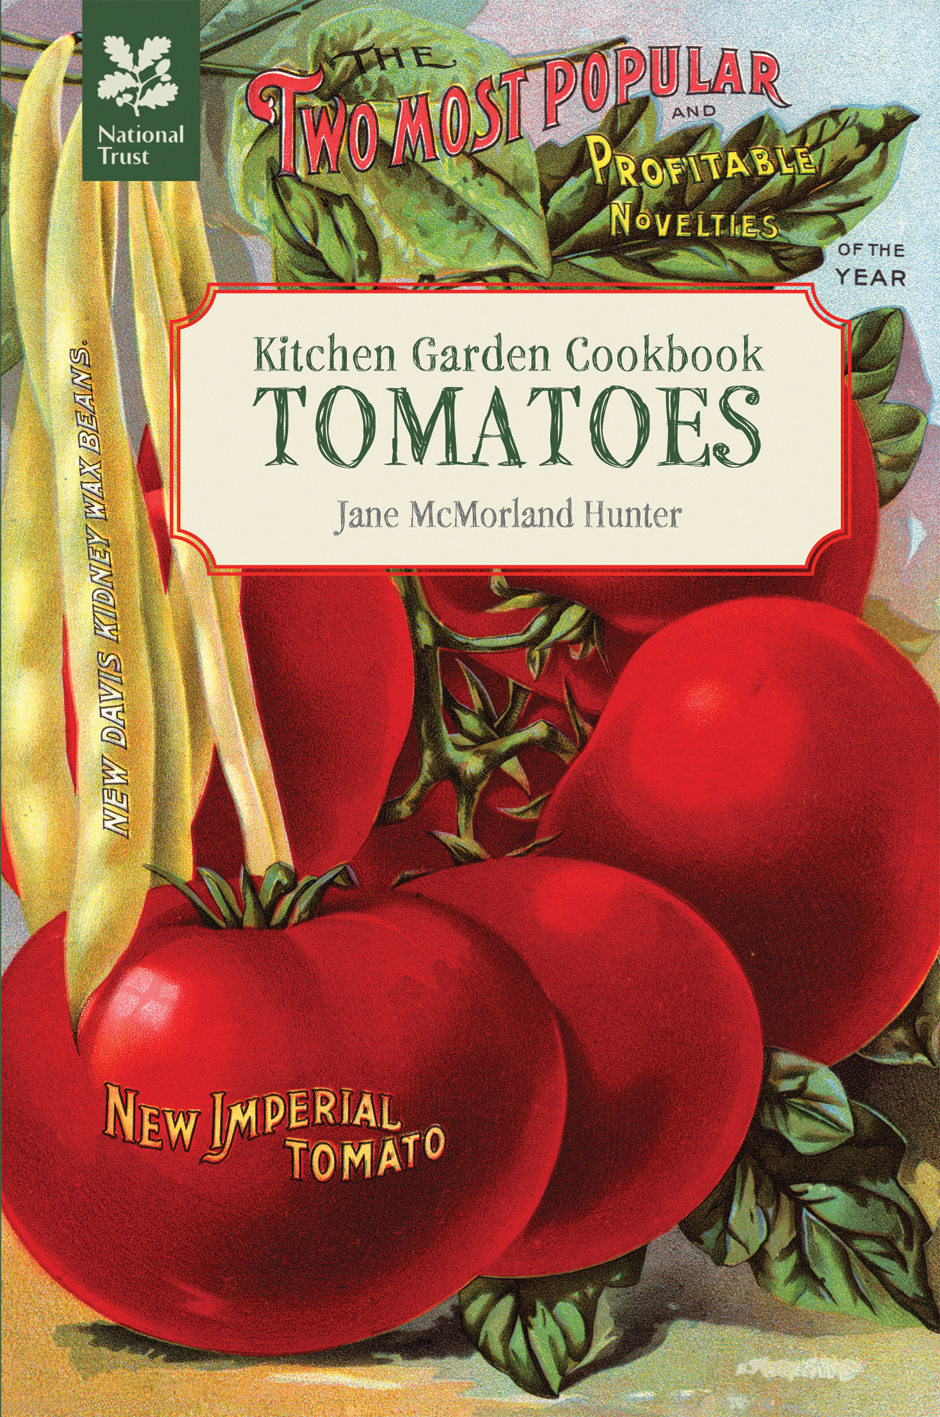 Kitchen Garden Cookbook: Tomatoes